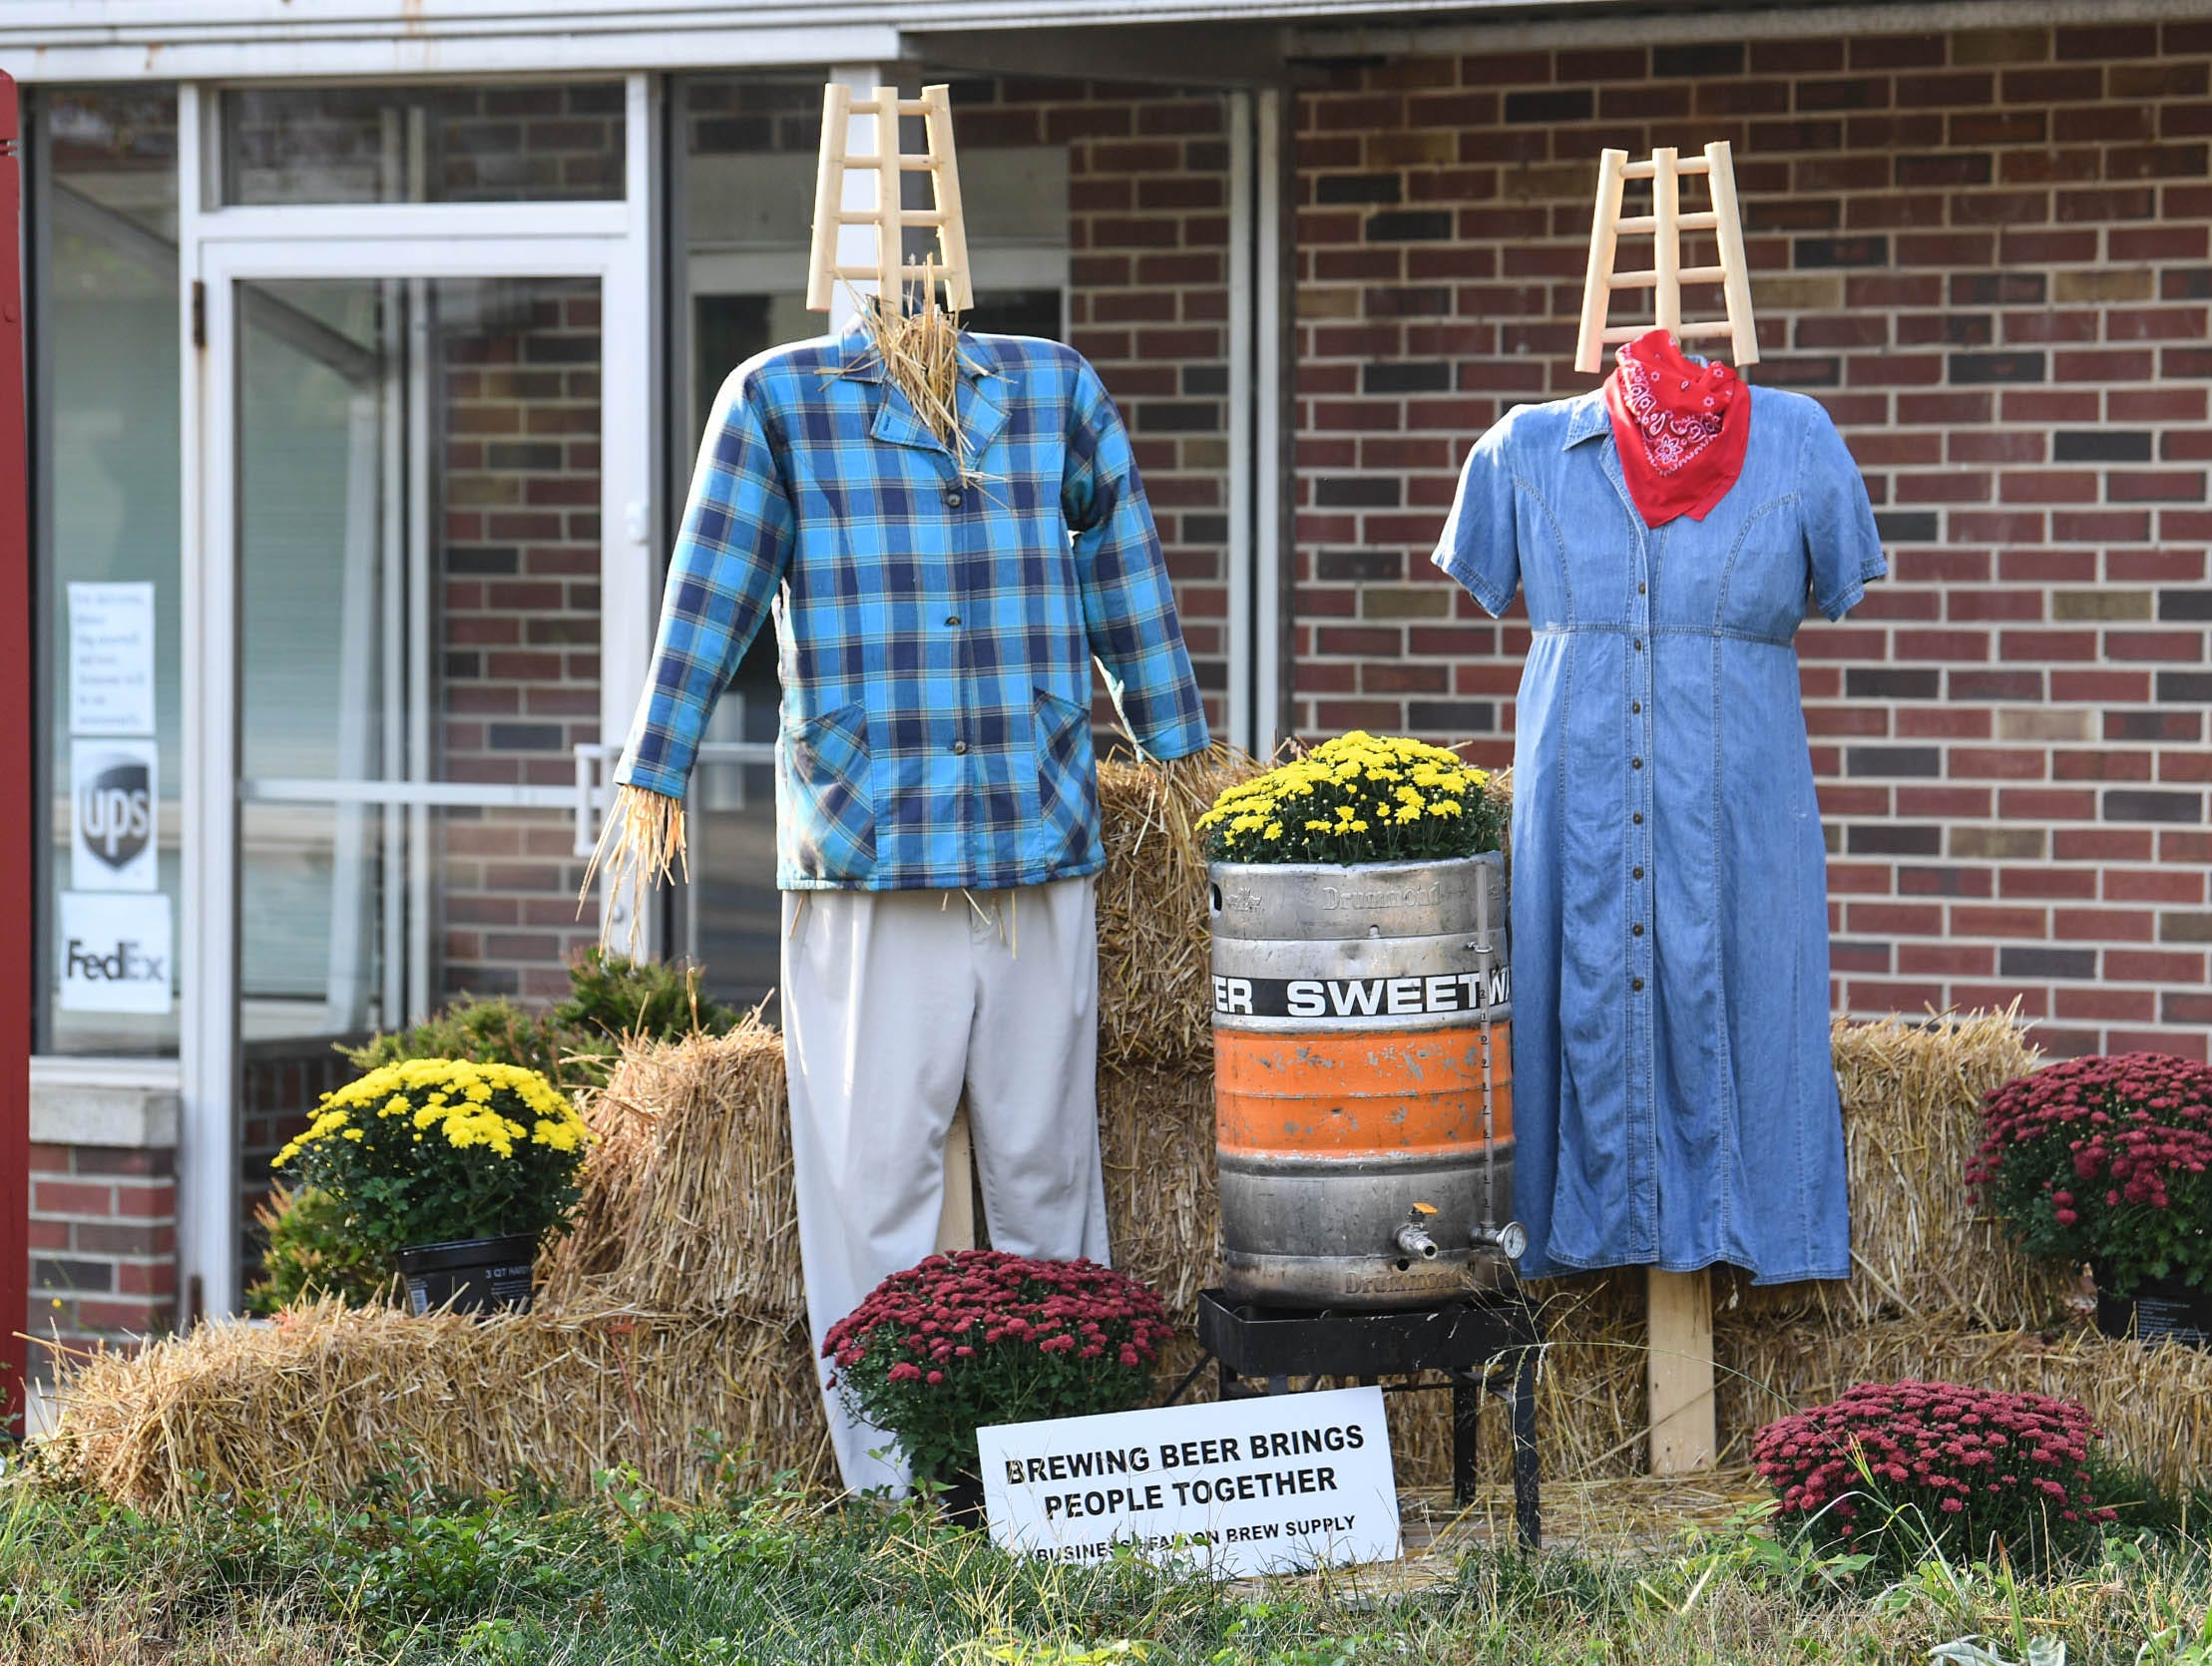 """""""Brewing Beer Brings People Together"""" is one of many displays in The Pendleton Scarecrow Contest leading up to the 20th Fall Harvest Festival in the village green Saturday, October 6 from 10 a.m. to 5 p.m. The annual contest in Pendleton for businesses, individuals, groups, organizations and churches who create fun not scary Scarecrows. People driving around the downtown square can see different theme scarecrows."""